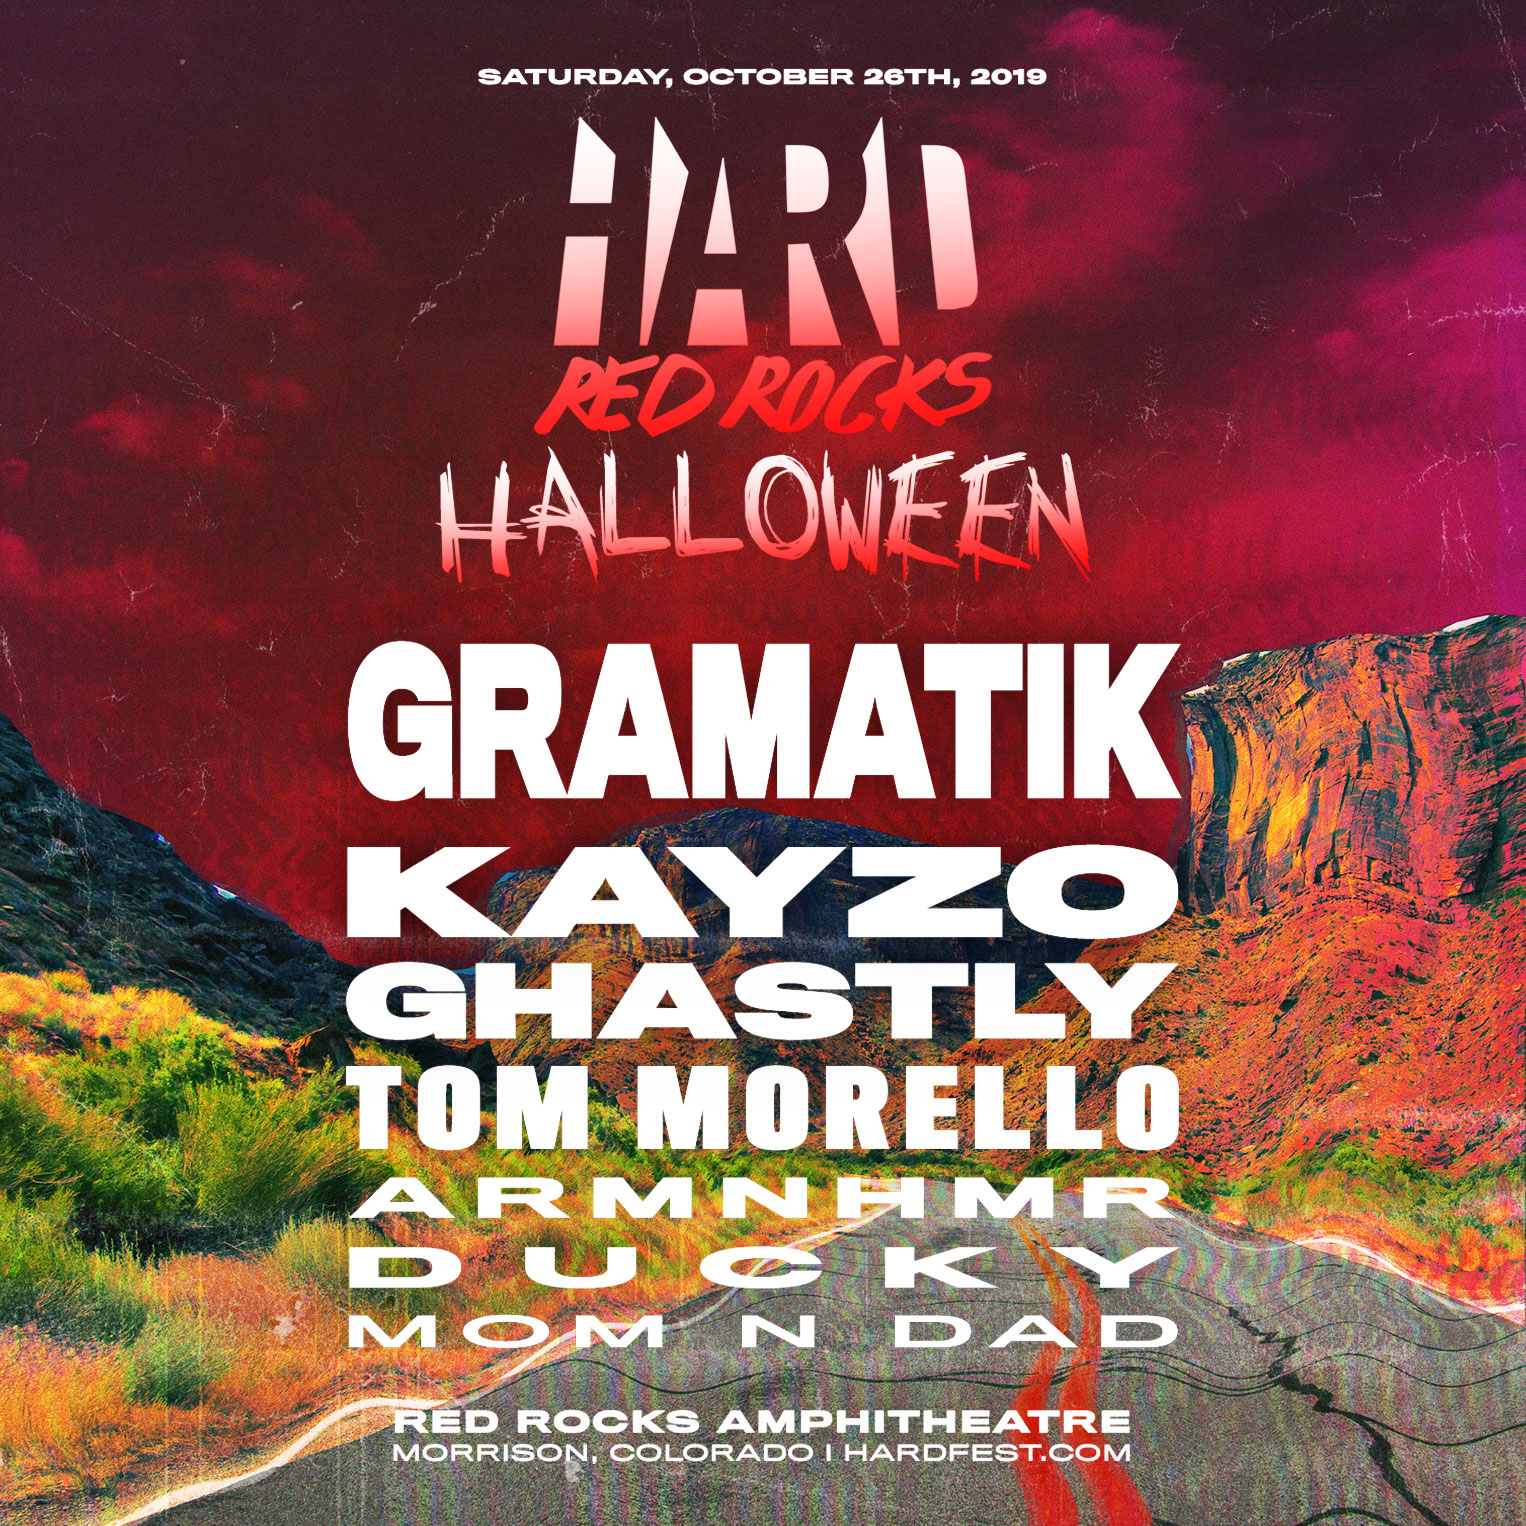 Halloween Eventi 2019.Hard Alternative Electronic Hip Hop Music Events